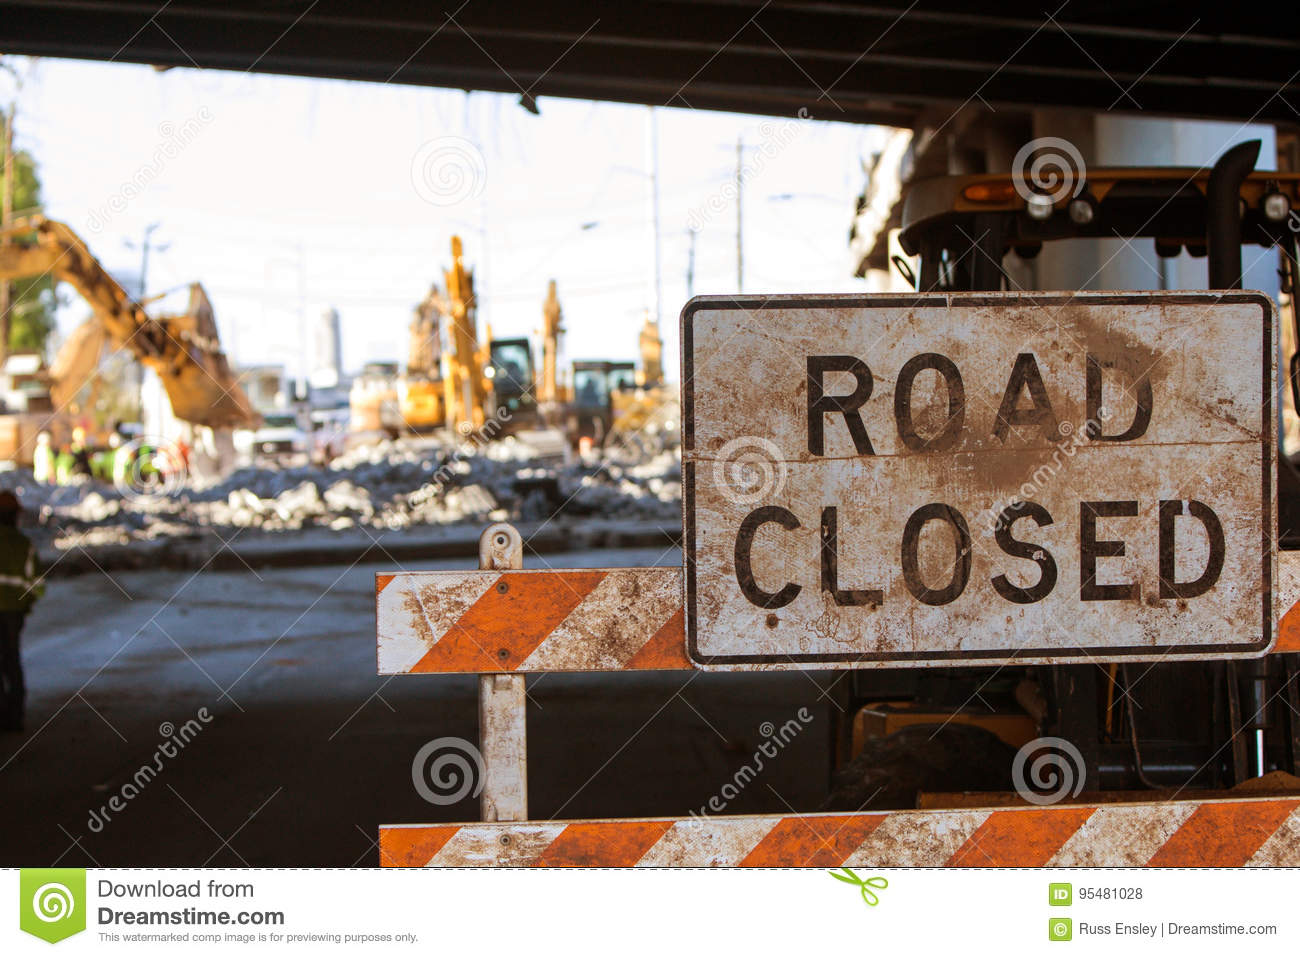 Road Closed Barricade Blocks Access To Major Interstate Construction